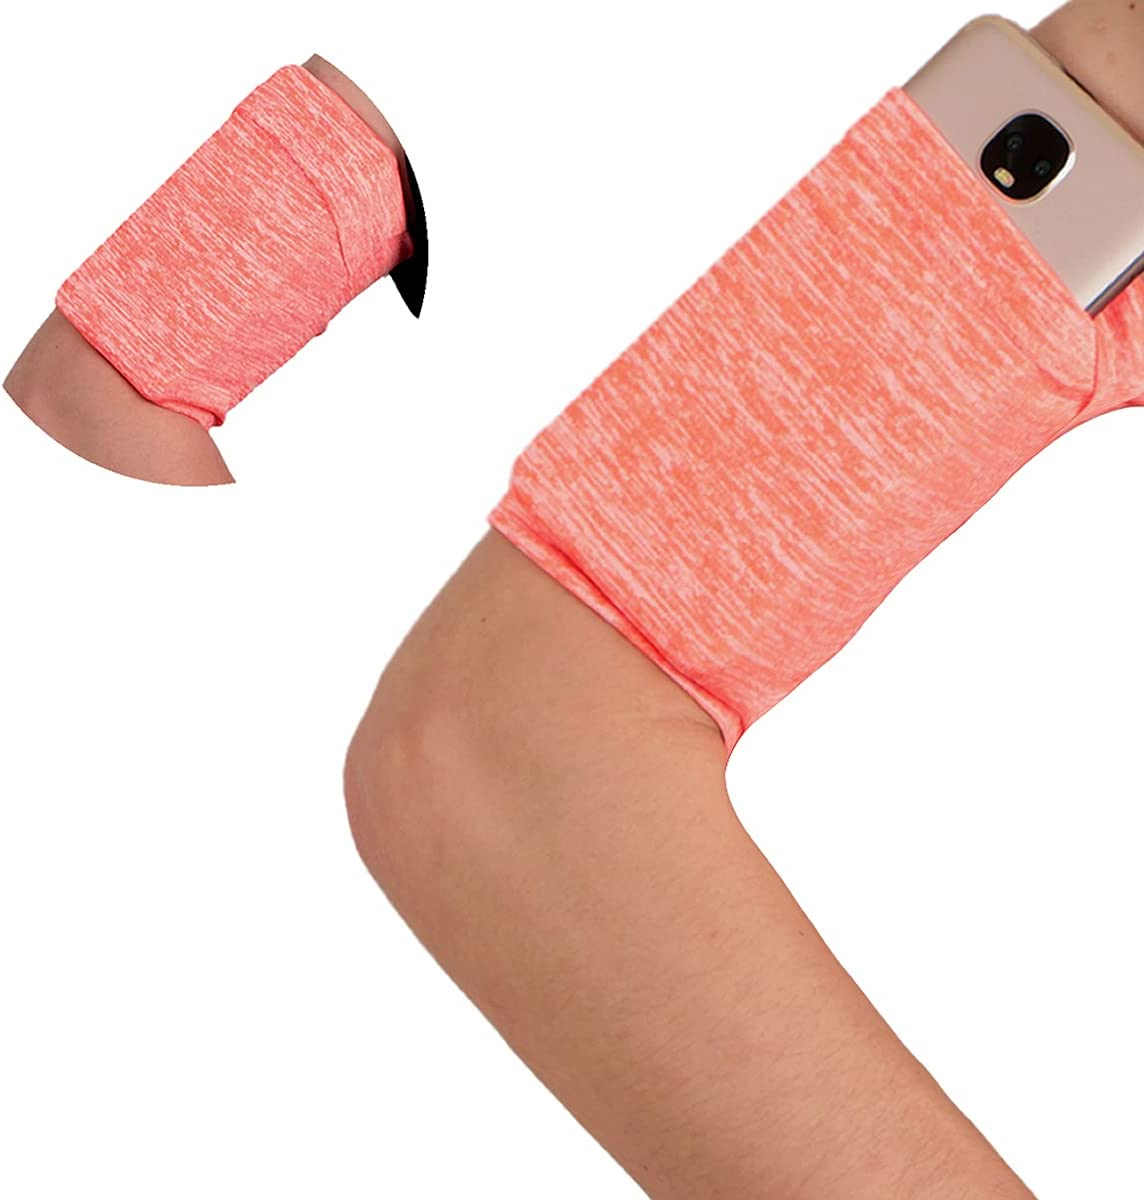 SMALL Armband Wristband for Cellphone Running - Cell Phone Wrist Band Sleeve Arm Bag - Sports Stretchy Spandex Arm Band Strap Holder Pouch Case for Yoga Walking Hiking Running Elastic - Orange Melange